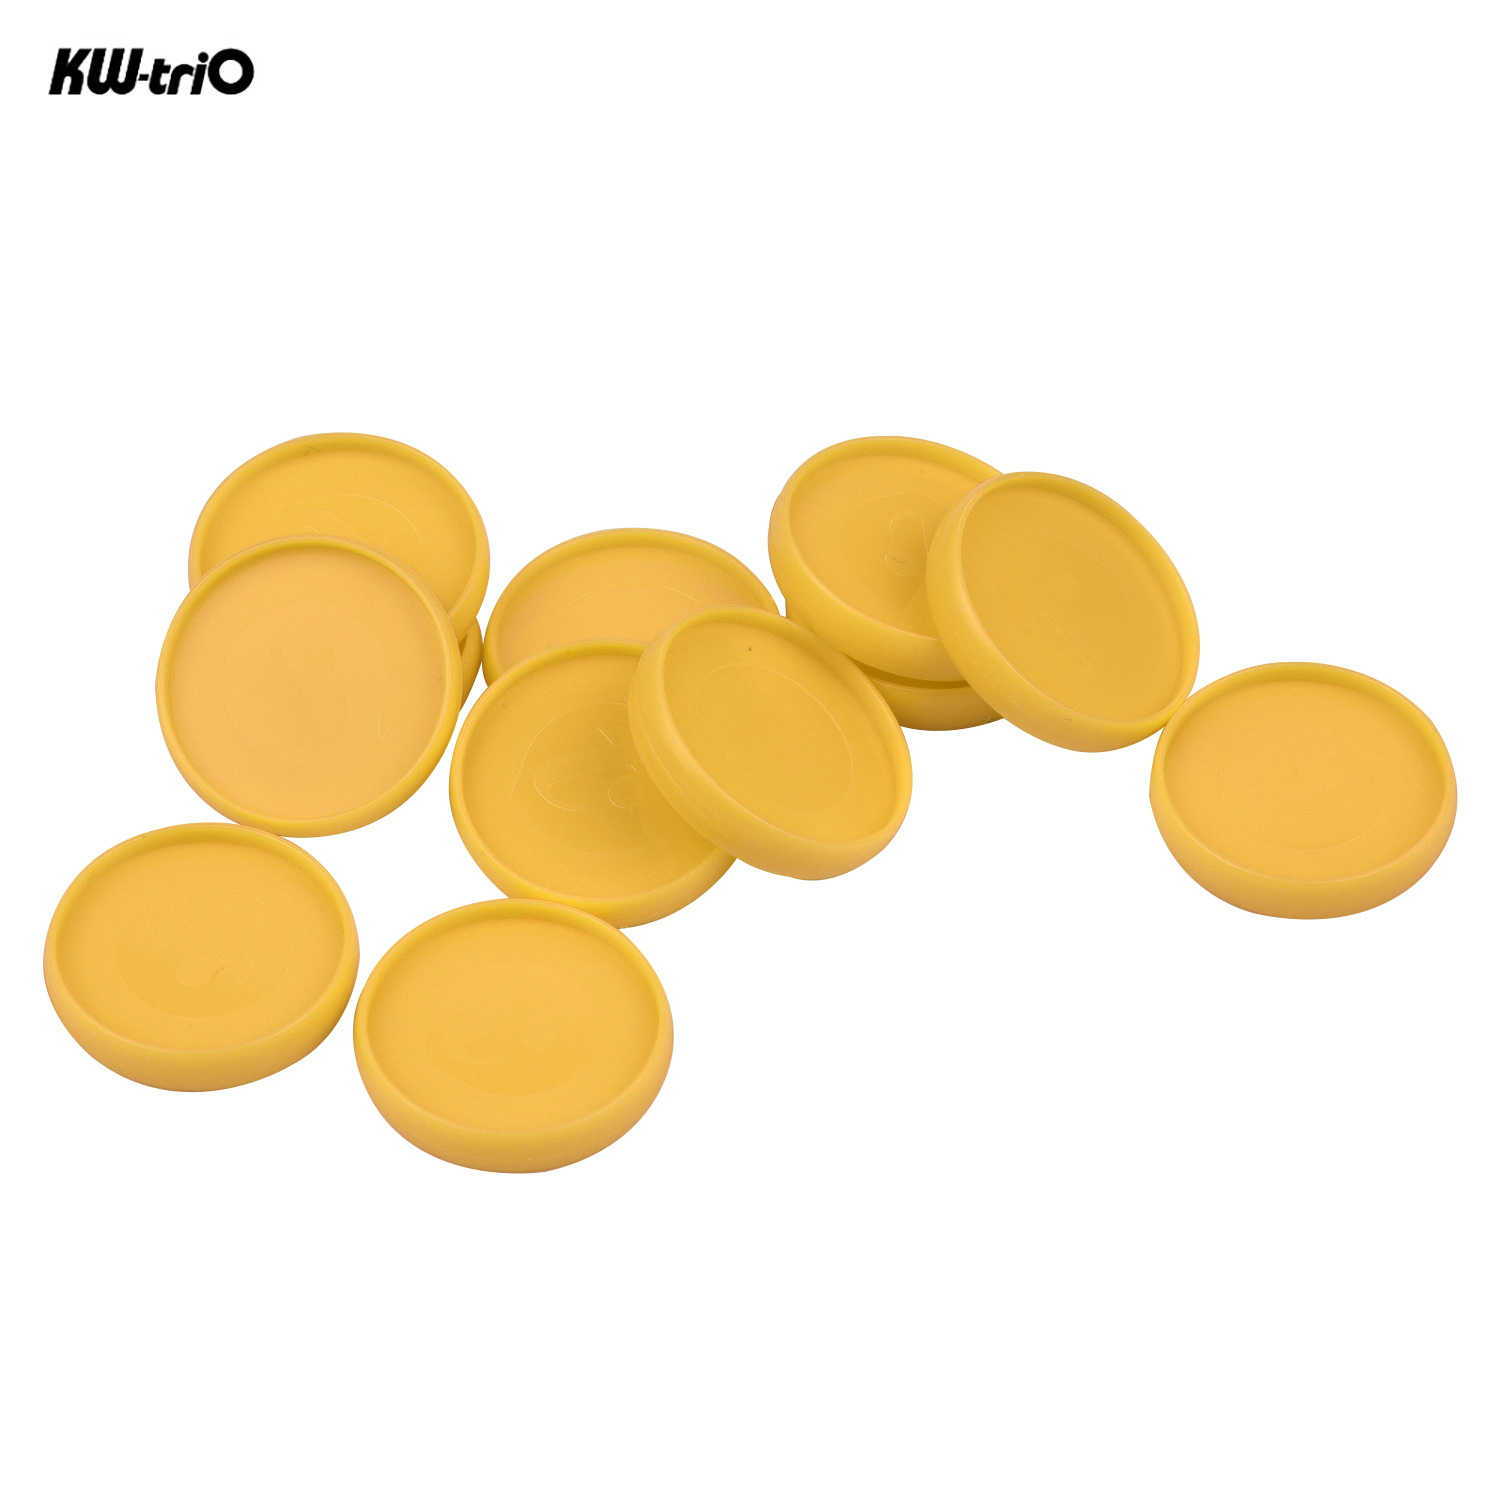 Entweg Disc Binding Ring,12pcs DIY Disc Binding Ring T-Type Mushroom Hole Loose Leaf Notebook Notepad Binder Fixing Disc Buckle 10mm//15mm//20mm//25mm